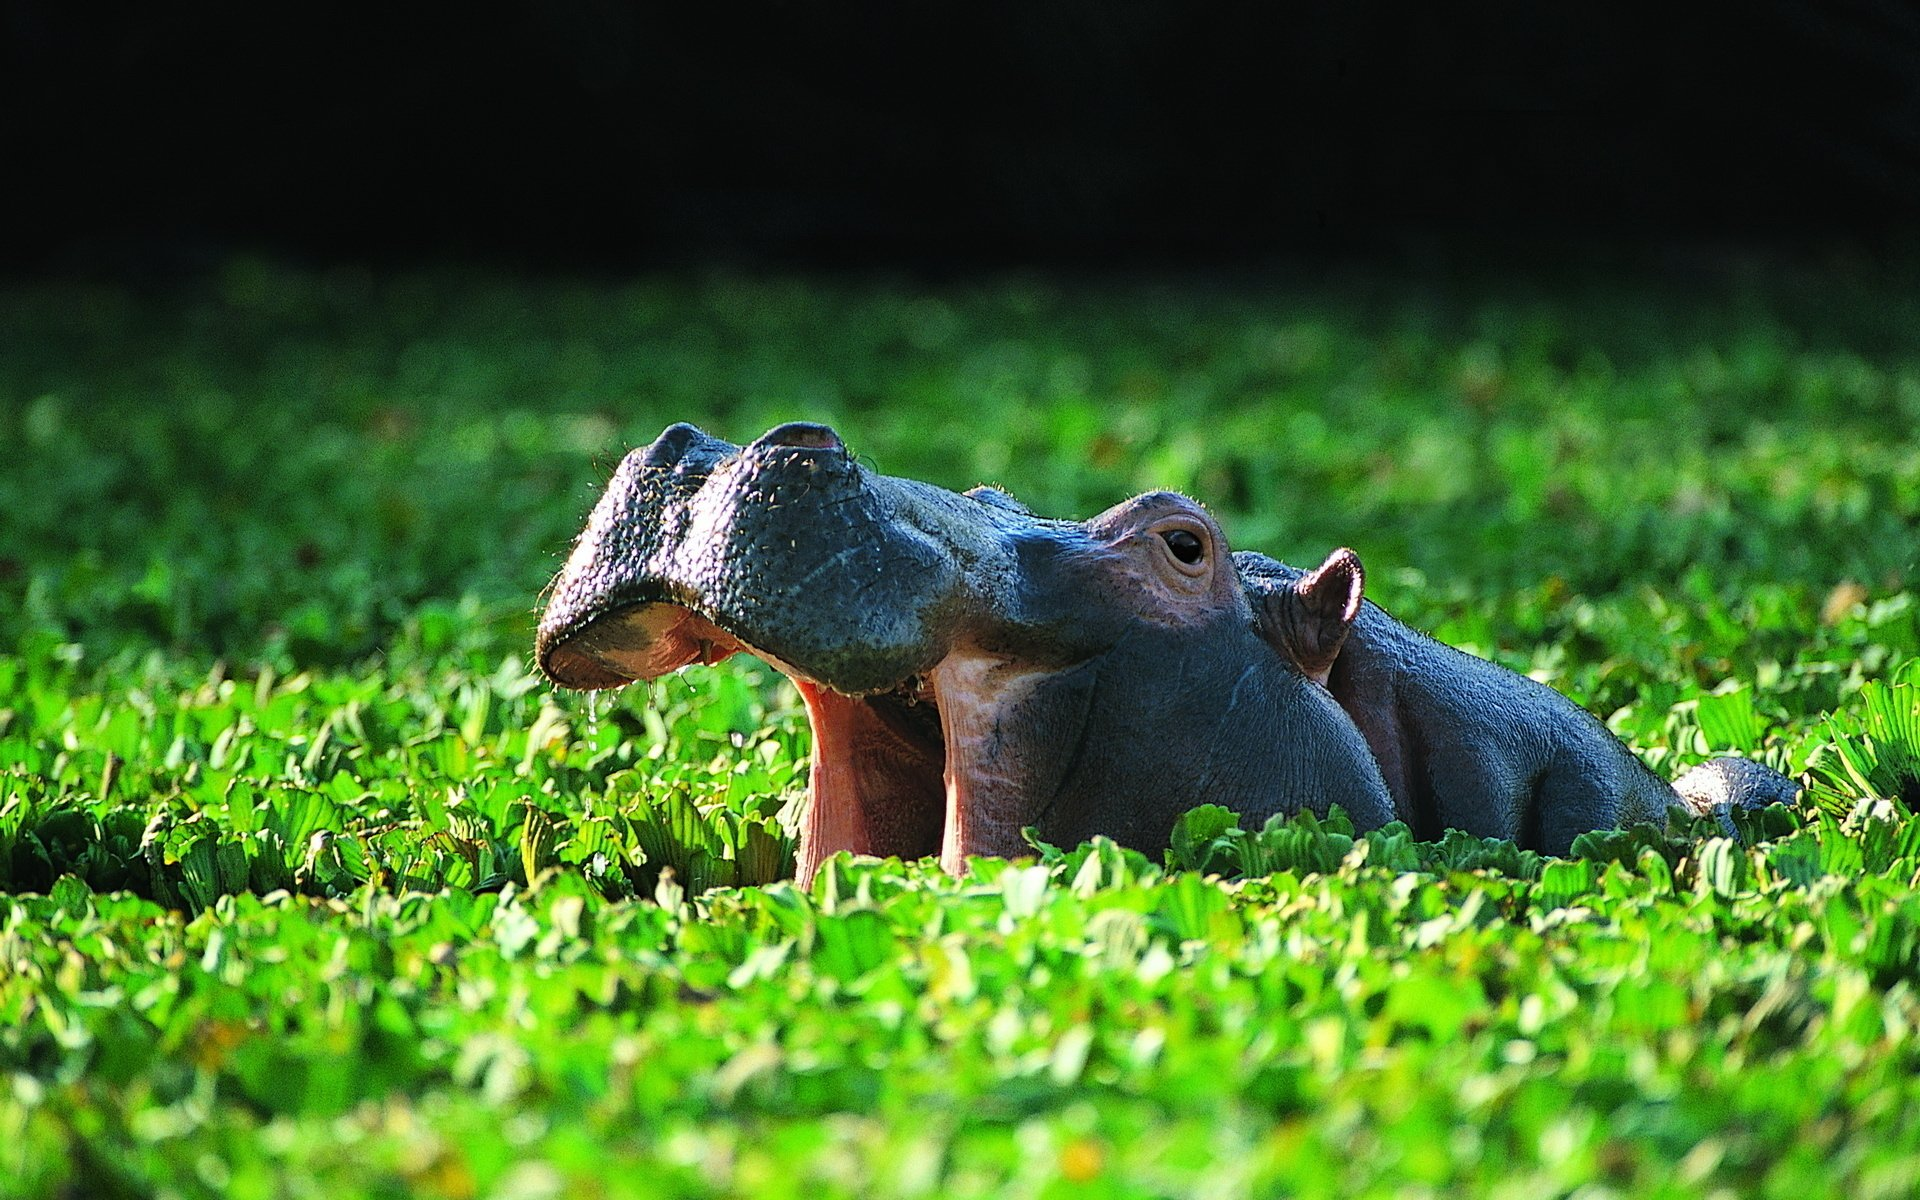 Cute Fat Baby Wallpapers Hippo Hd Wallpaper Background Image 1920x1200 Id